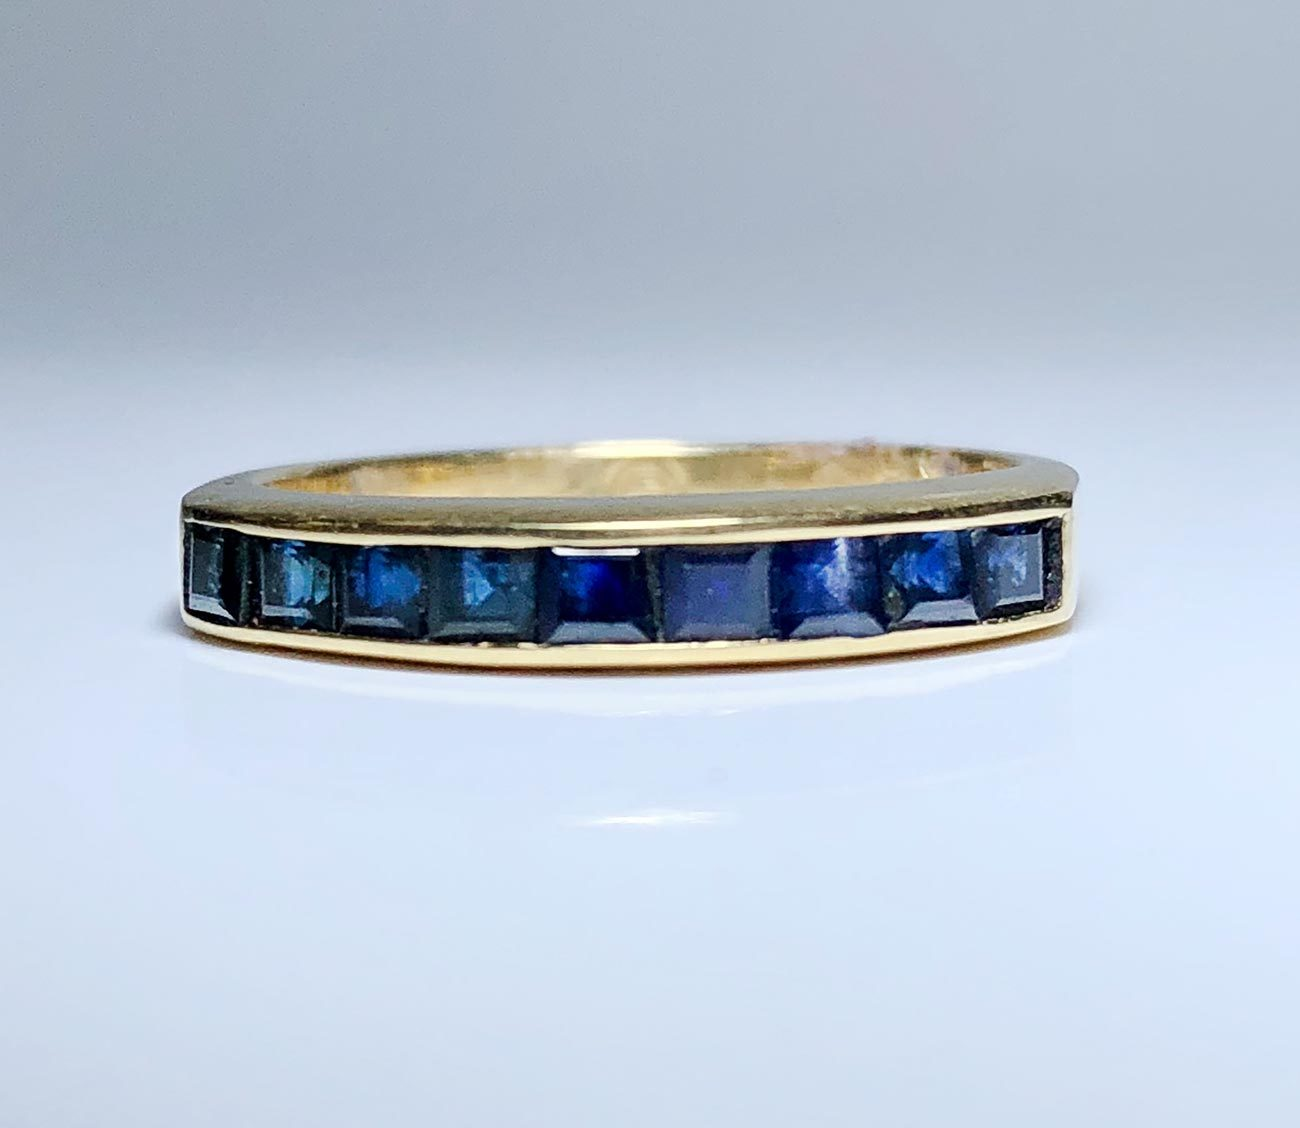 Ladies 18K Yellow Gold Sapphire Ring Band Size 6.25 I-12943